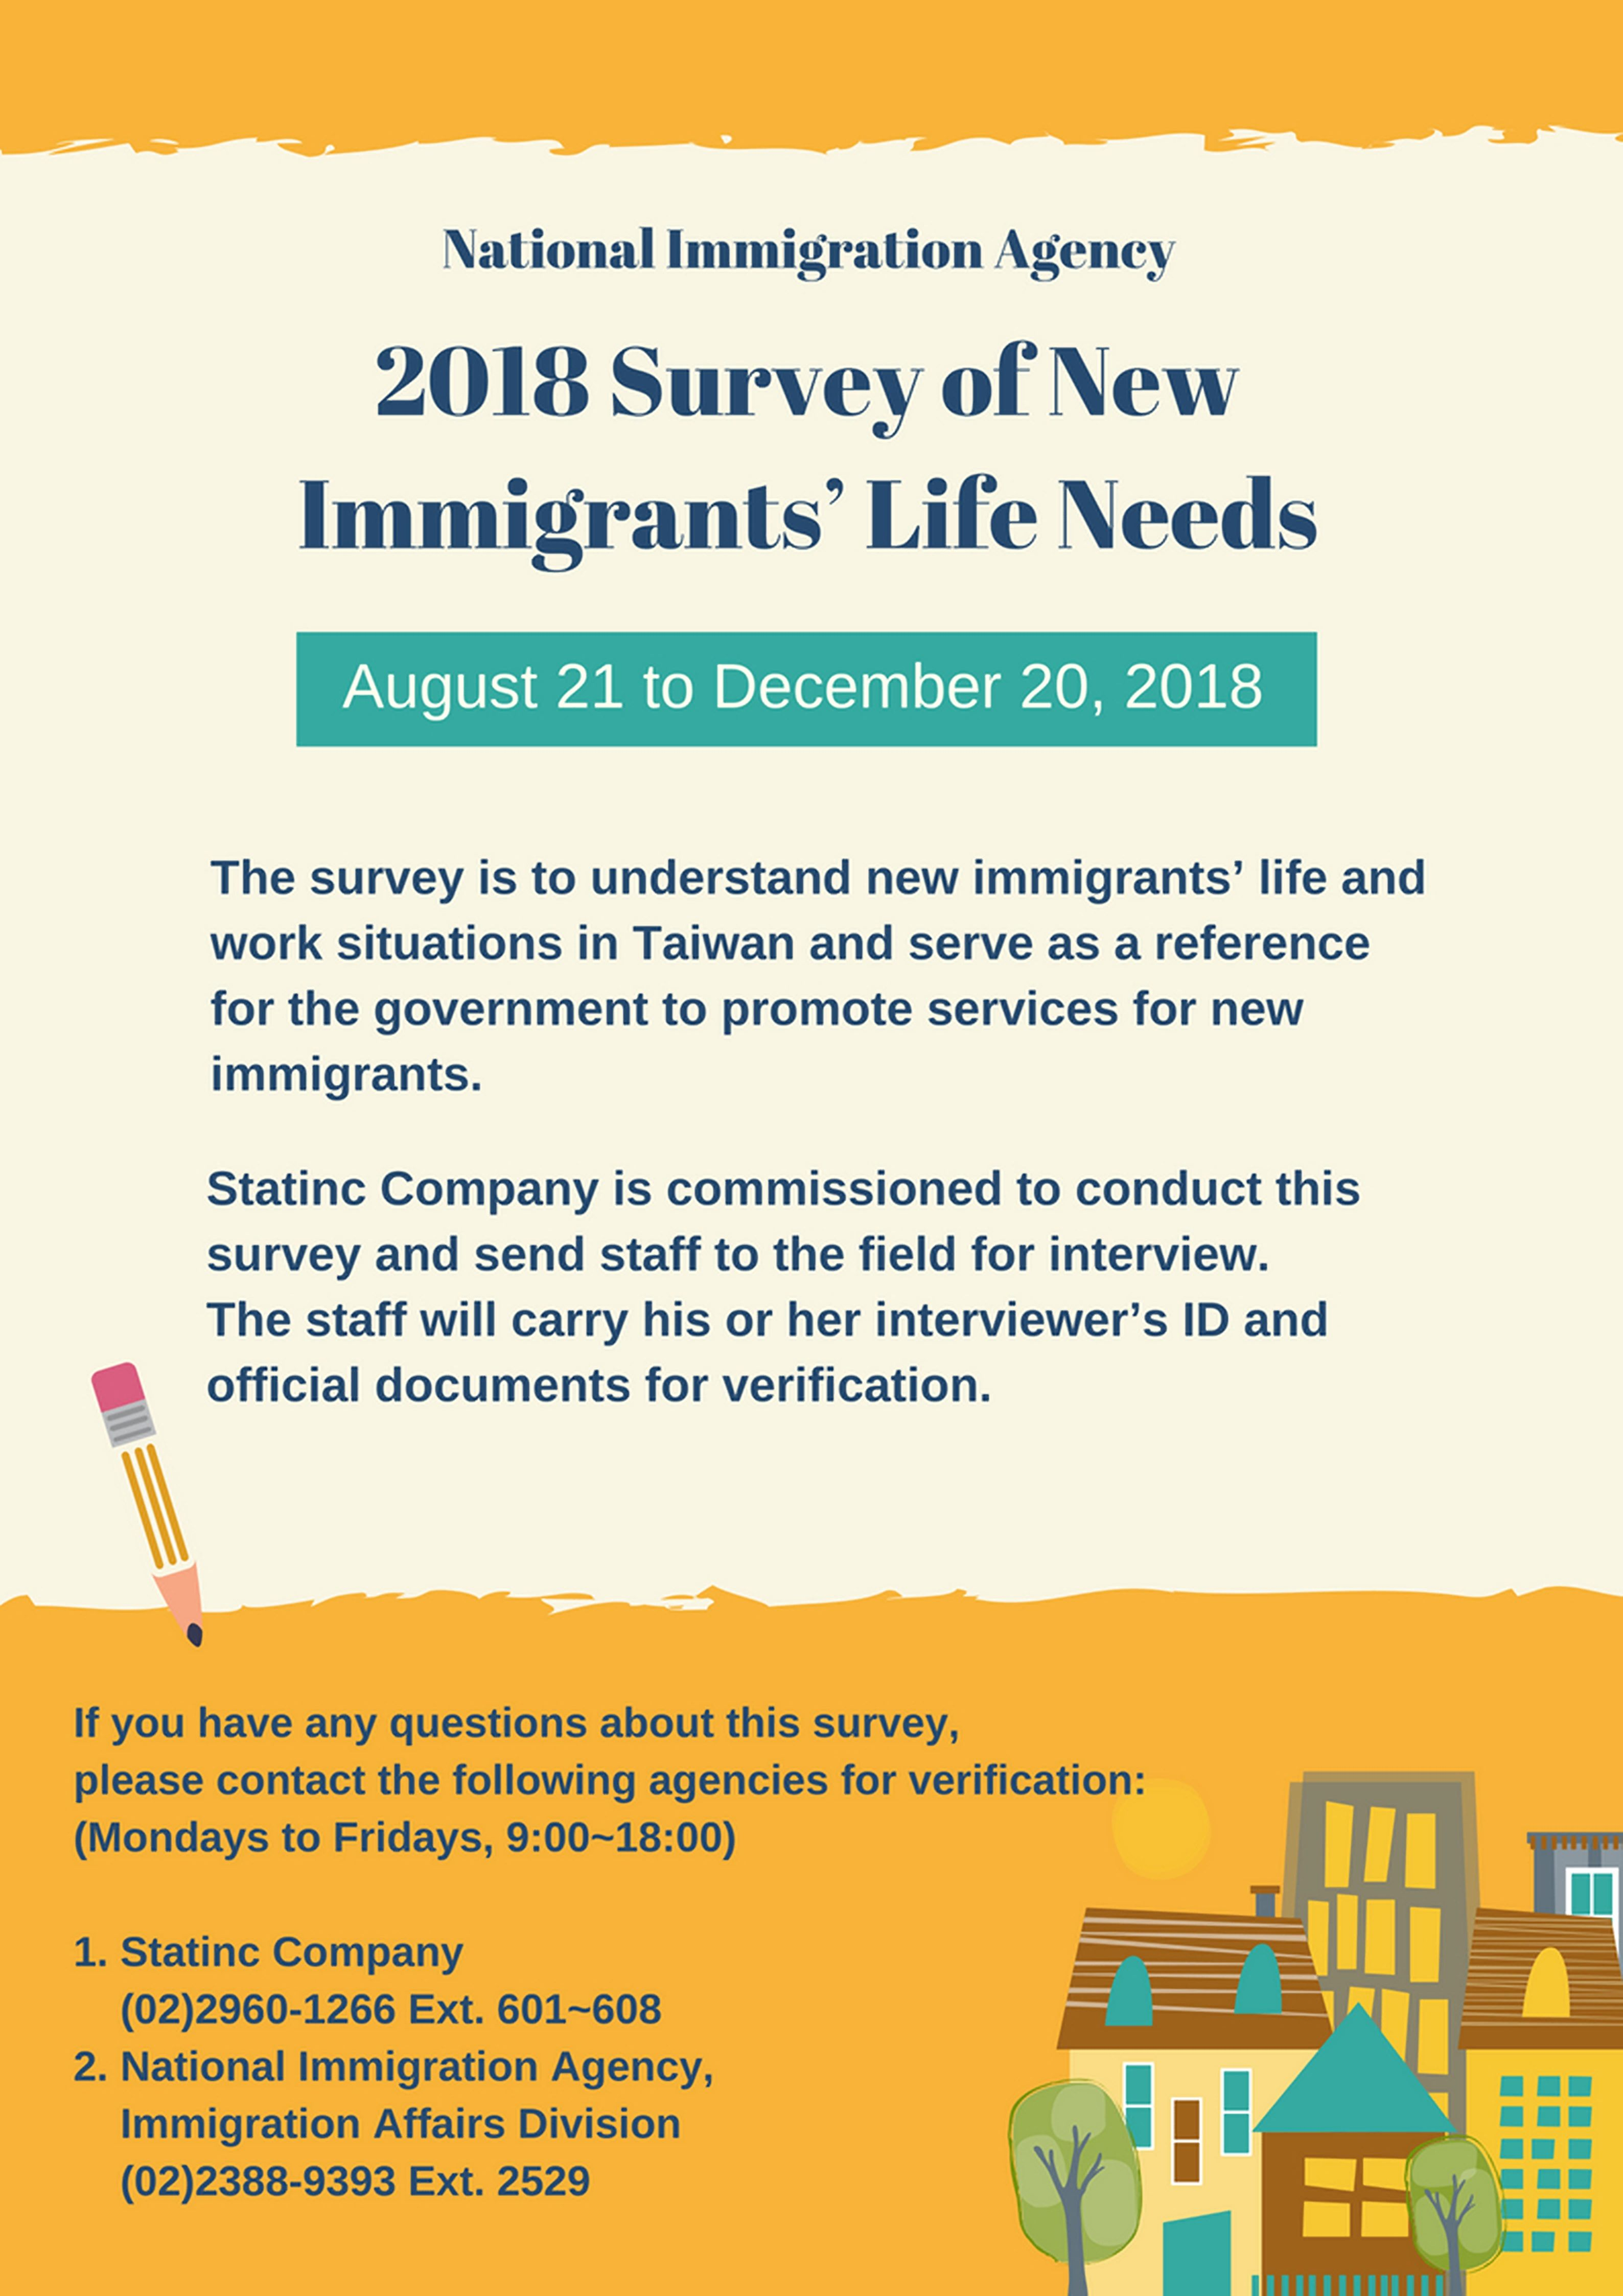 The National Immigration Agency will conduct the 2018 New-Immigrant Living Needs Survey between Aug. 21 and Dec. 20. Please complete the survey.